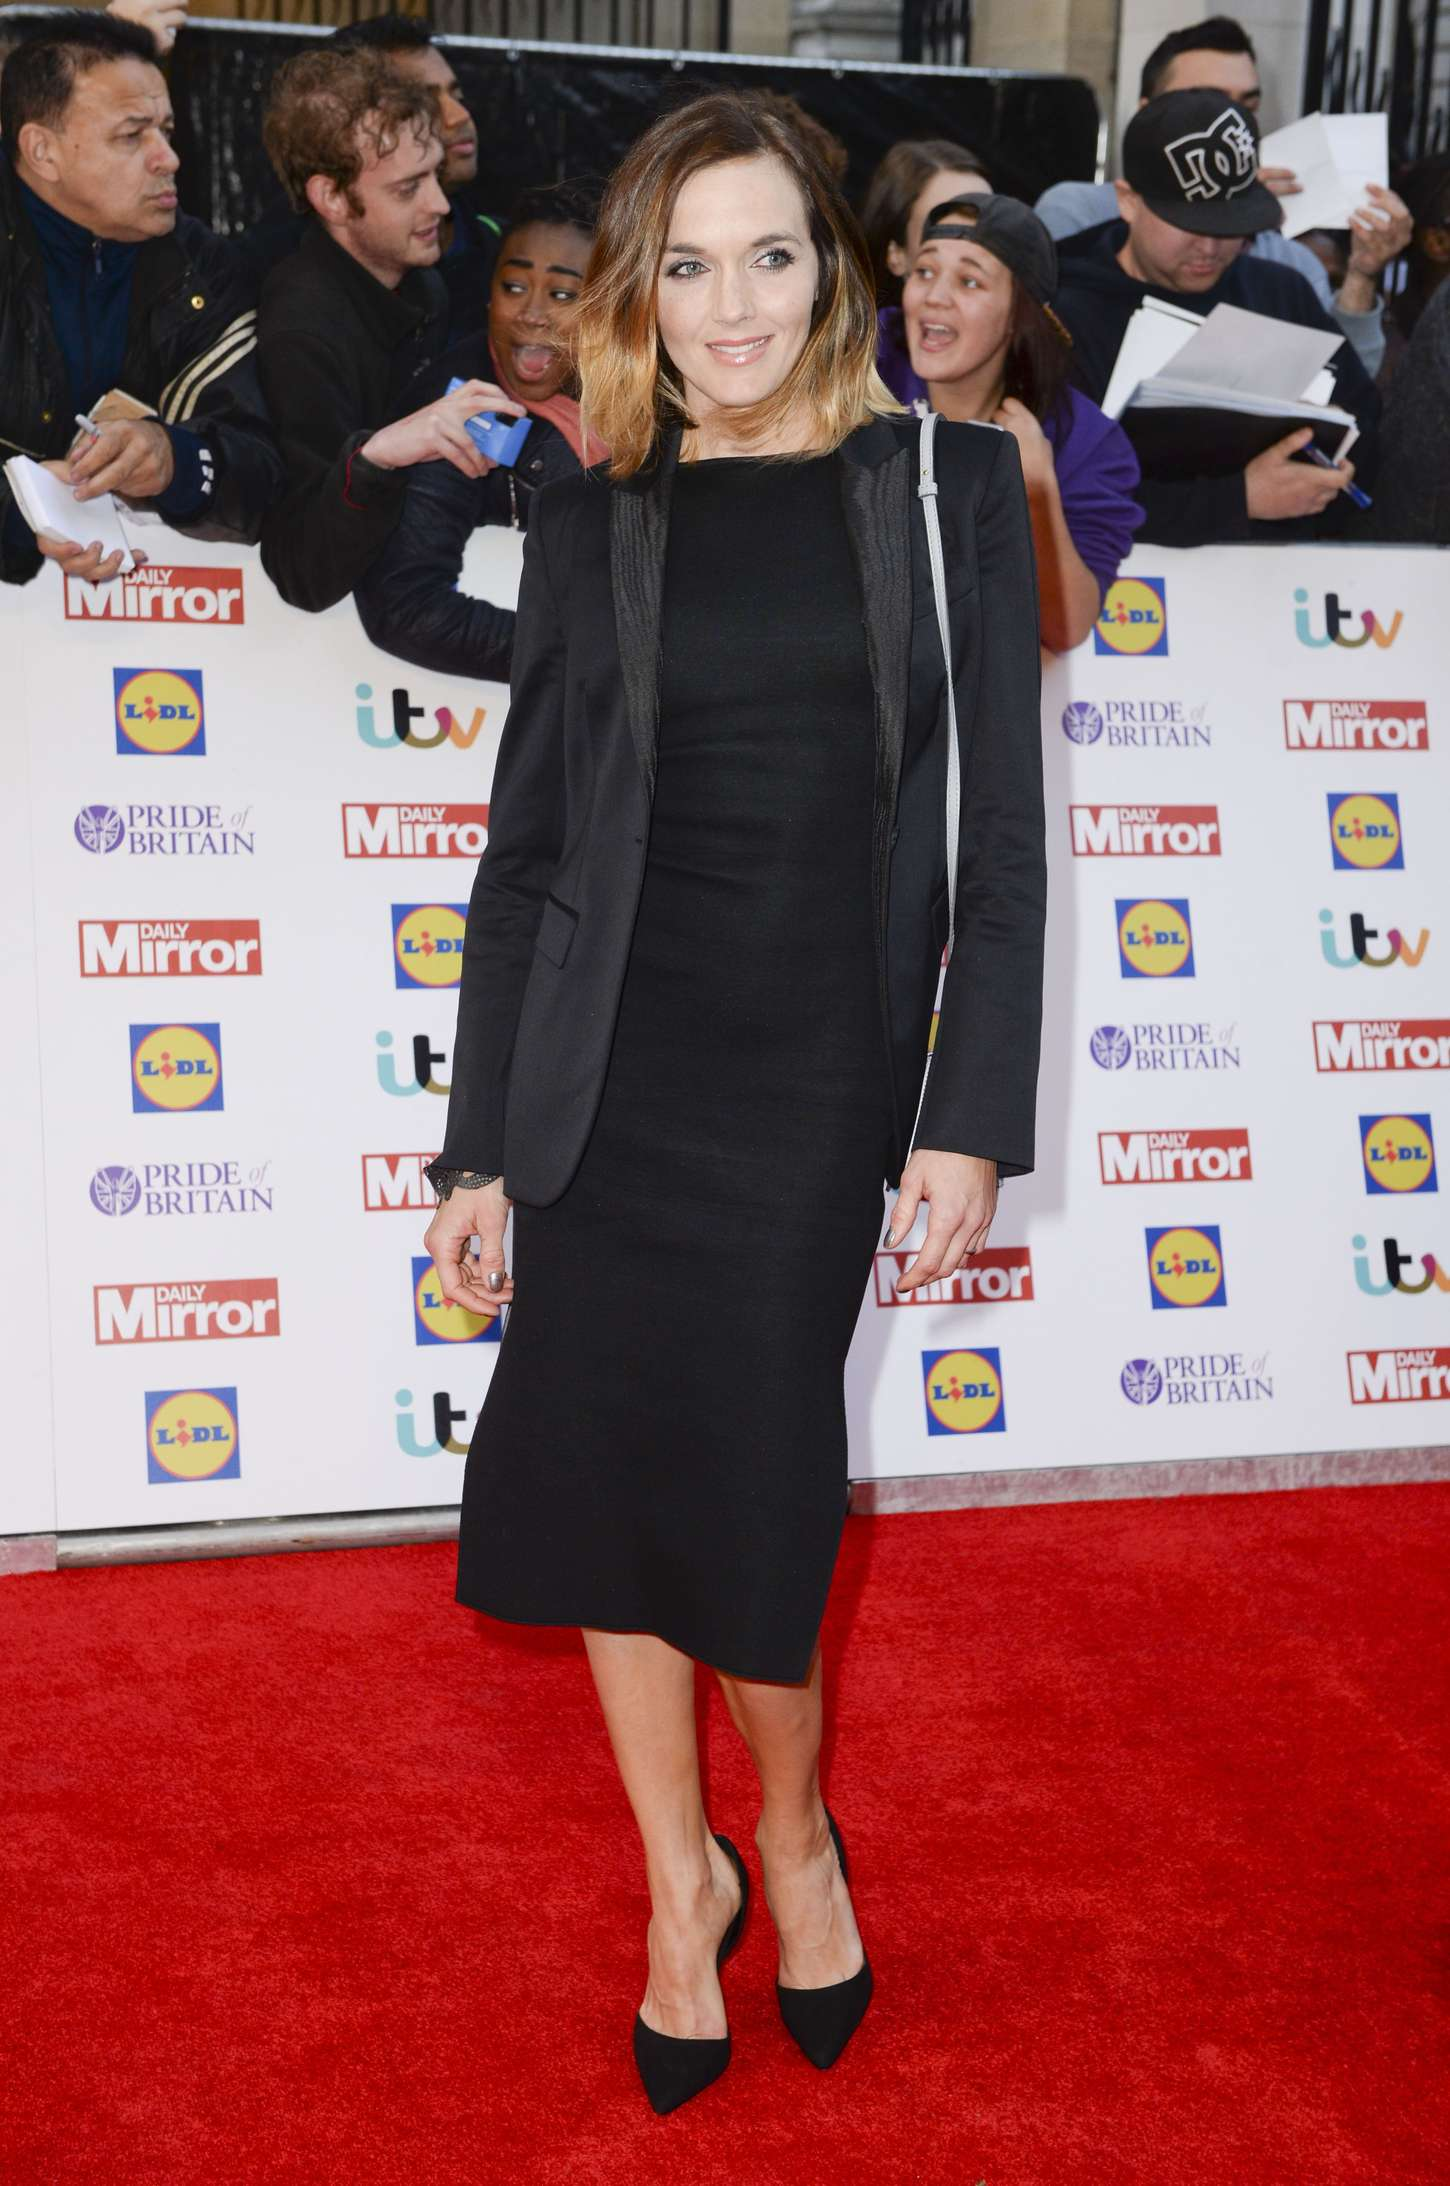 Victoria Pendleton Pride of Britain Awards in London